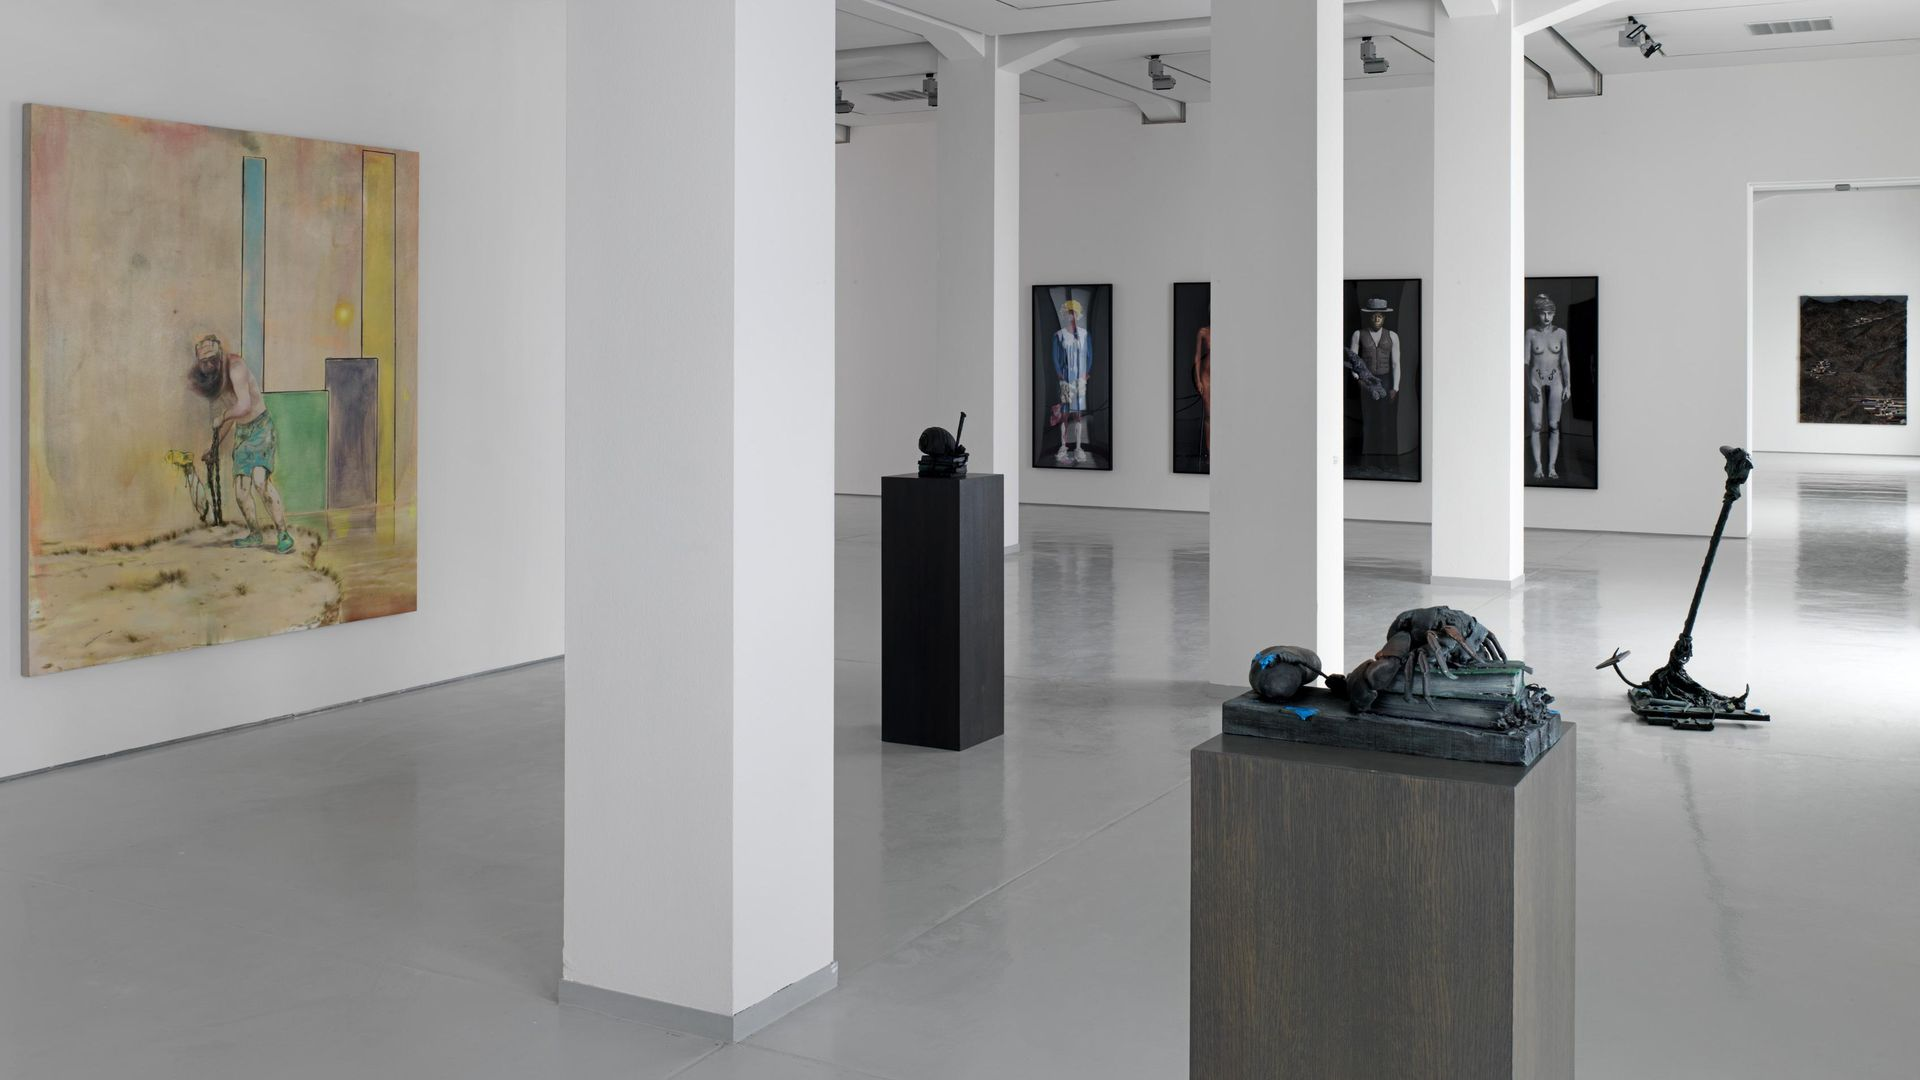 Hidden Stories, works by Nigel Cooke and Olaf Breuning, installation view KAI 10, photograph: © Achim Kukulies, 2012